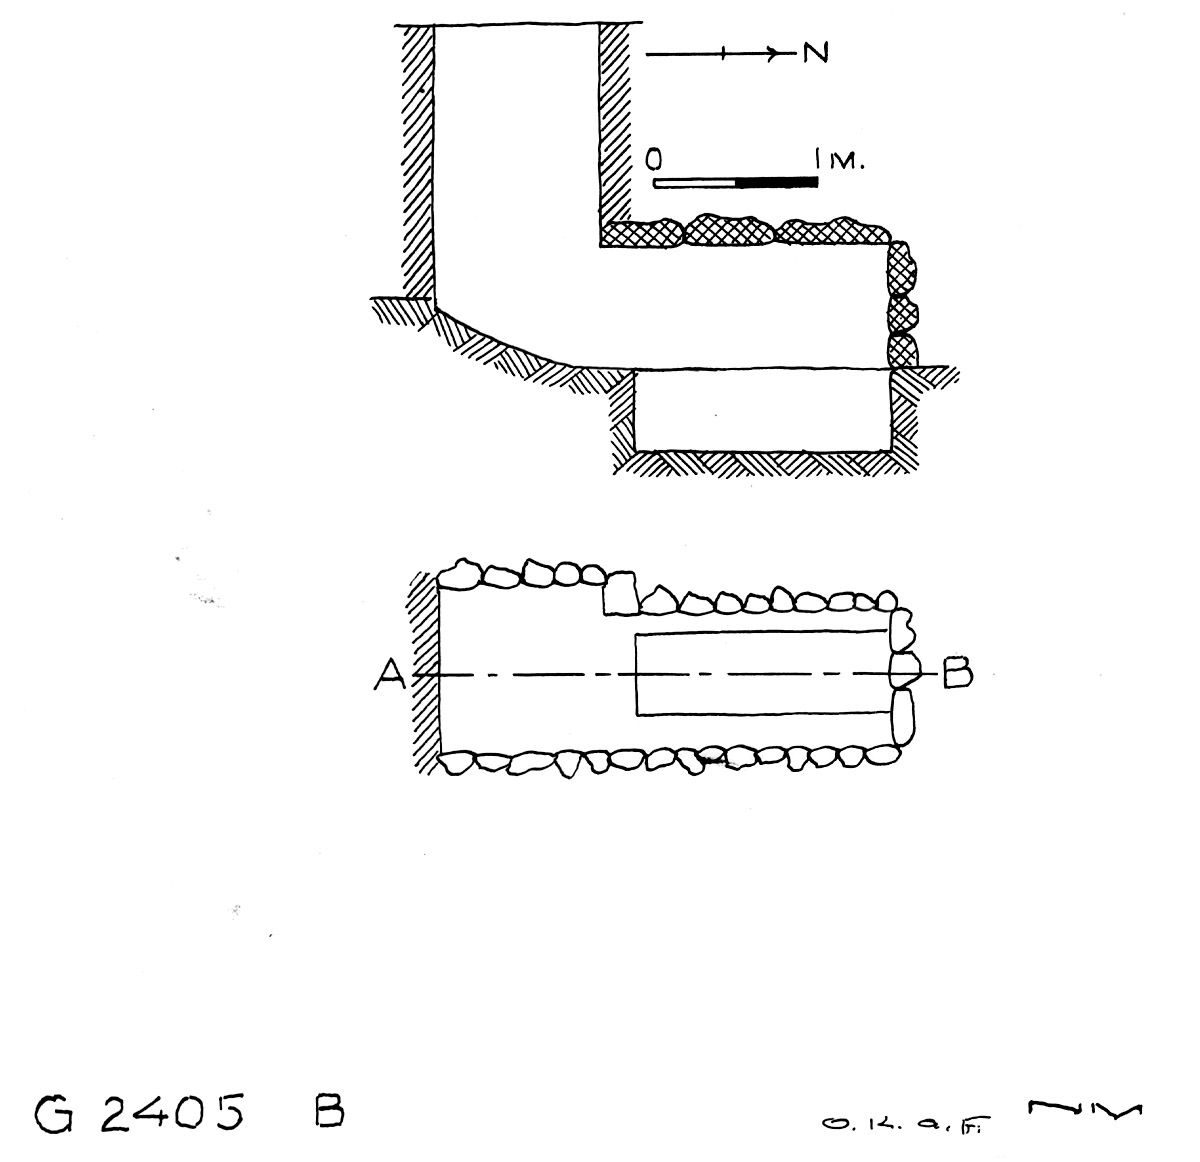 Maps and plans: G 2405, Shaft B